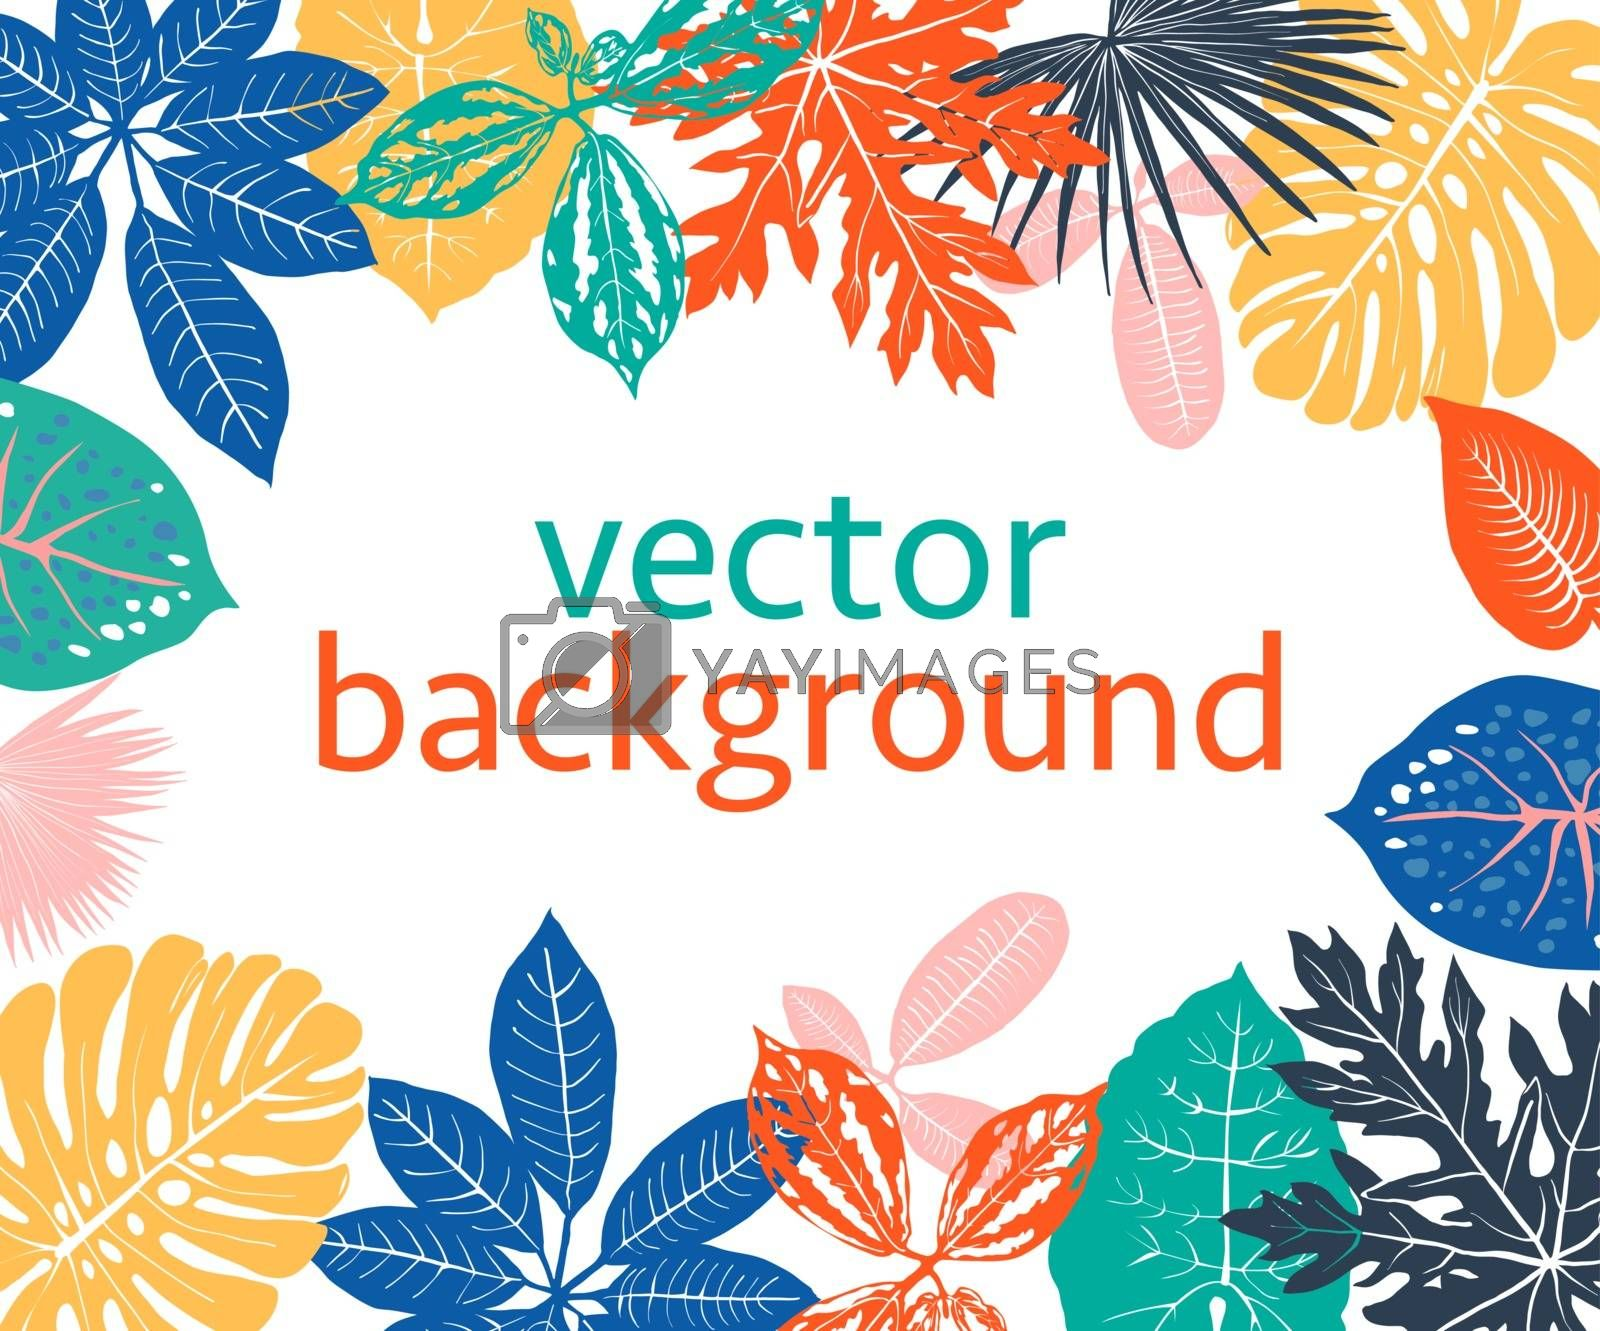 Background with exotic plants and leaves with copy space for text. Backdrop for greeting cards, posters, banners and placards Exotic botanical design.